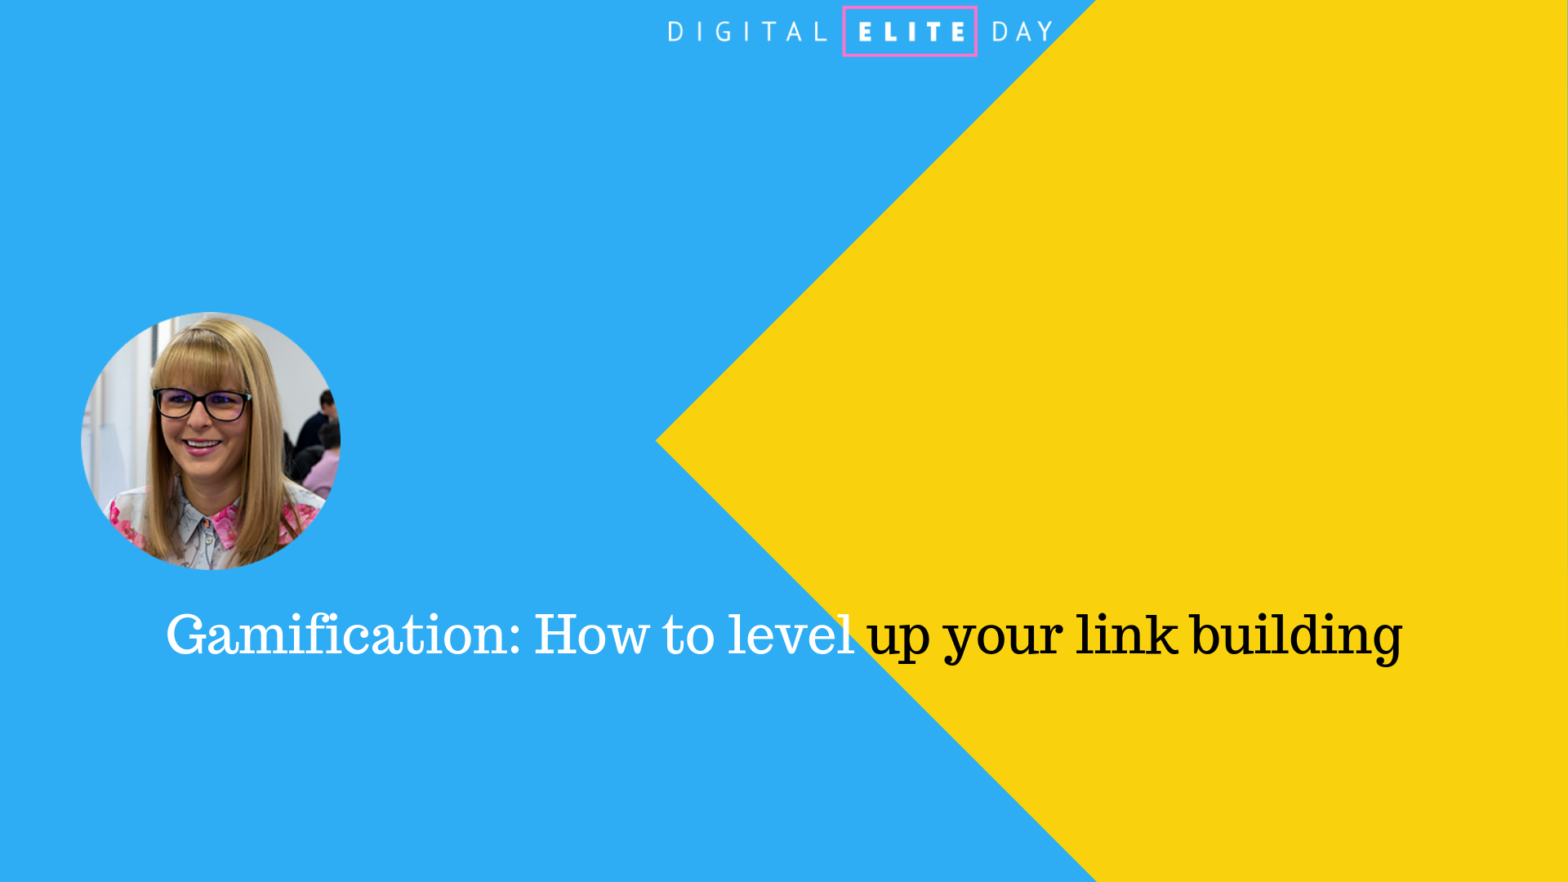 Gamification: How to level up your link building